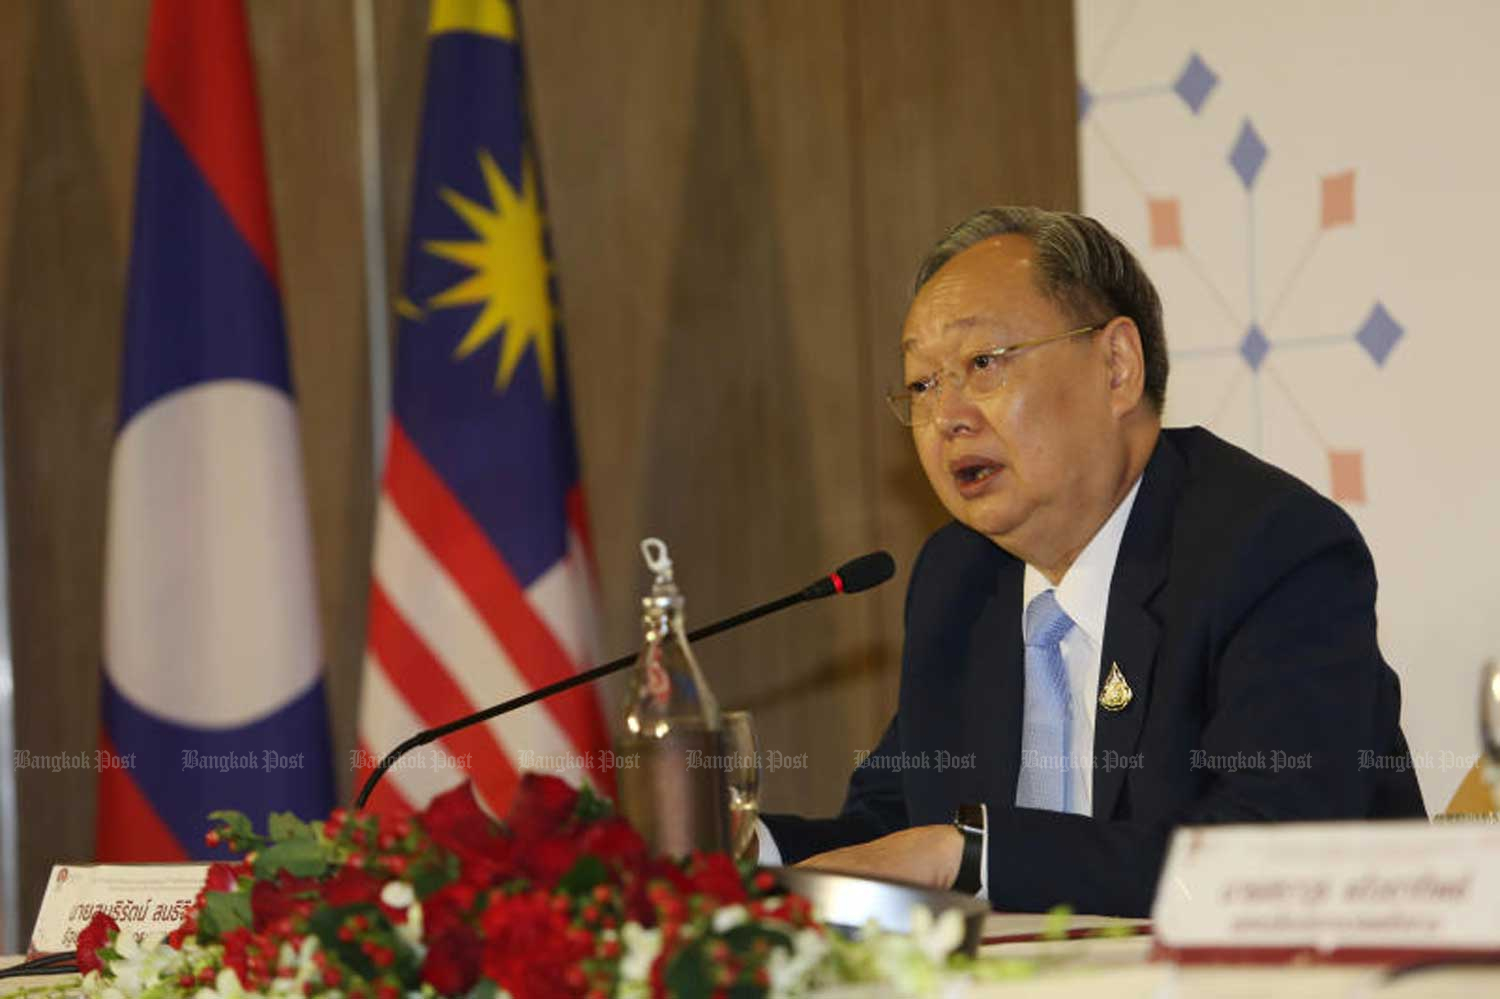 Energy Minister Sontirat Sontijirawong is at the 37th Asean Energy Business Forum in Bangkok on Aug 22. (File photo by Varuth Hirunyatheb)